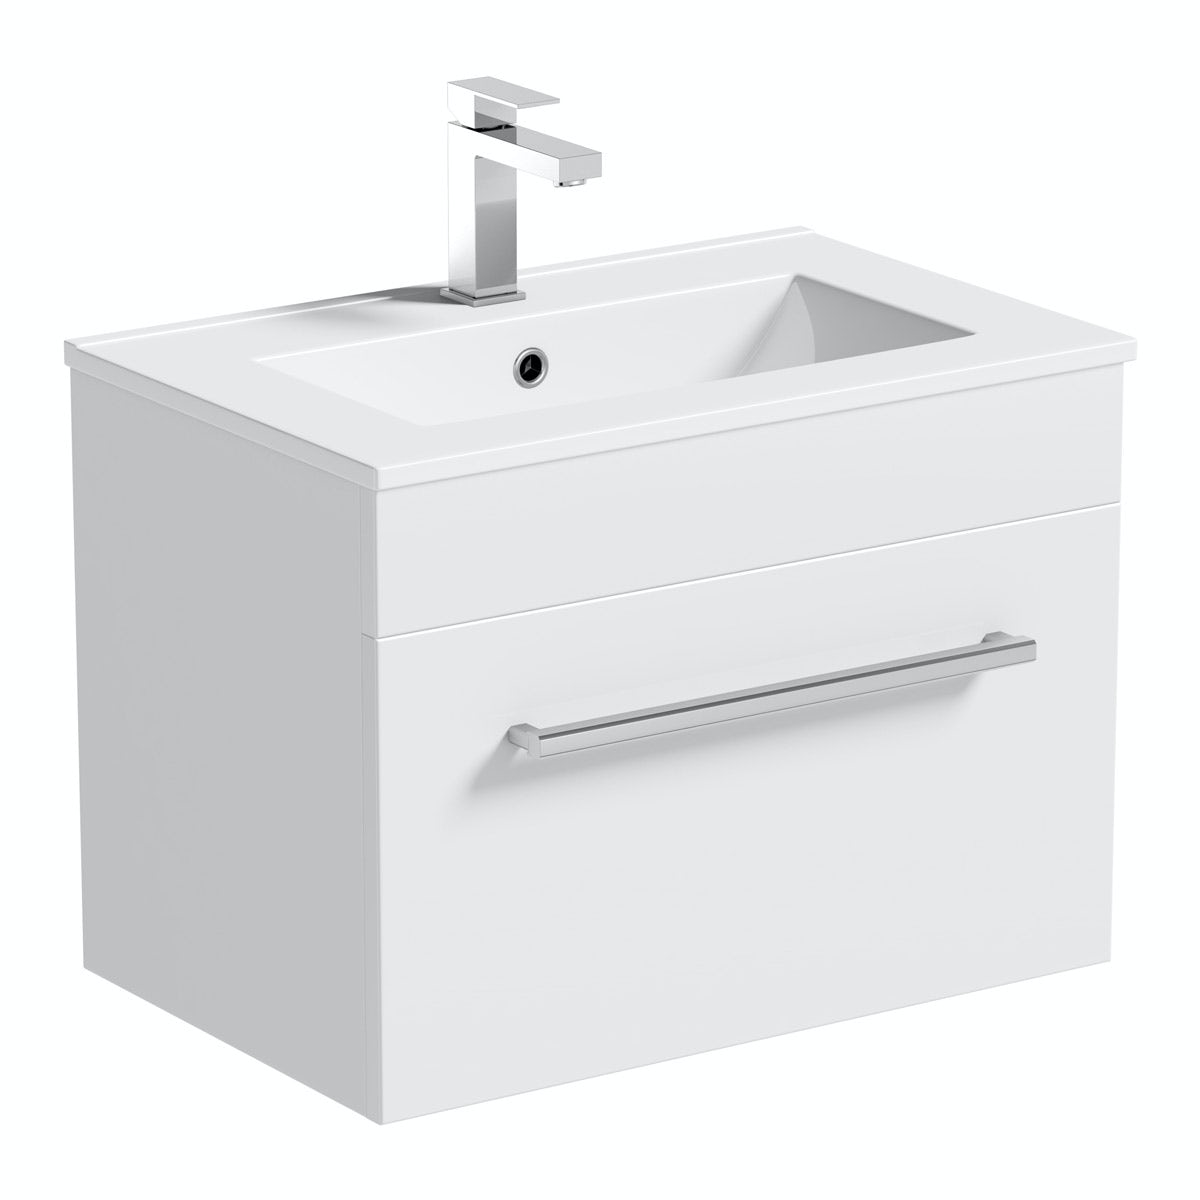 Victoria Plumb Showers >> Orchard Derwent white wall hung vanity drawer unit and sink 600mm